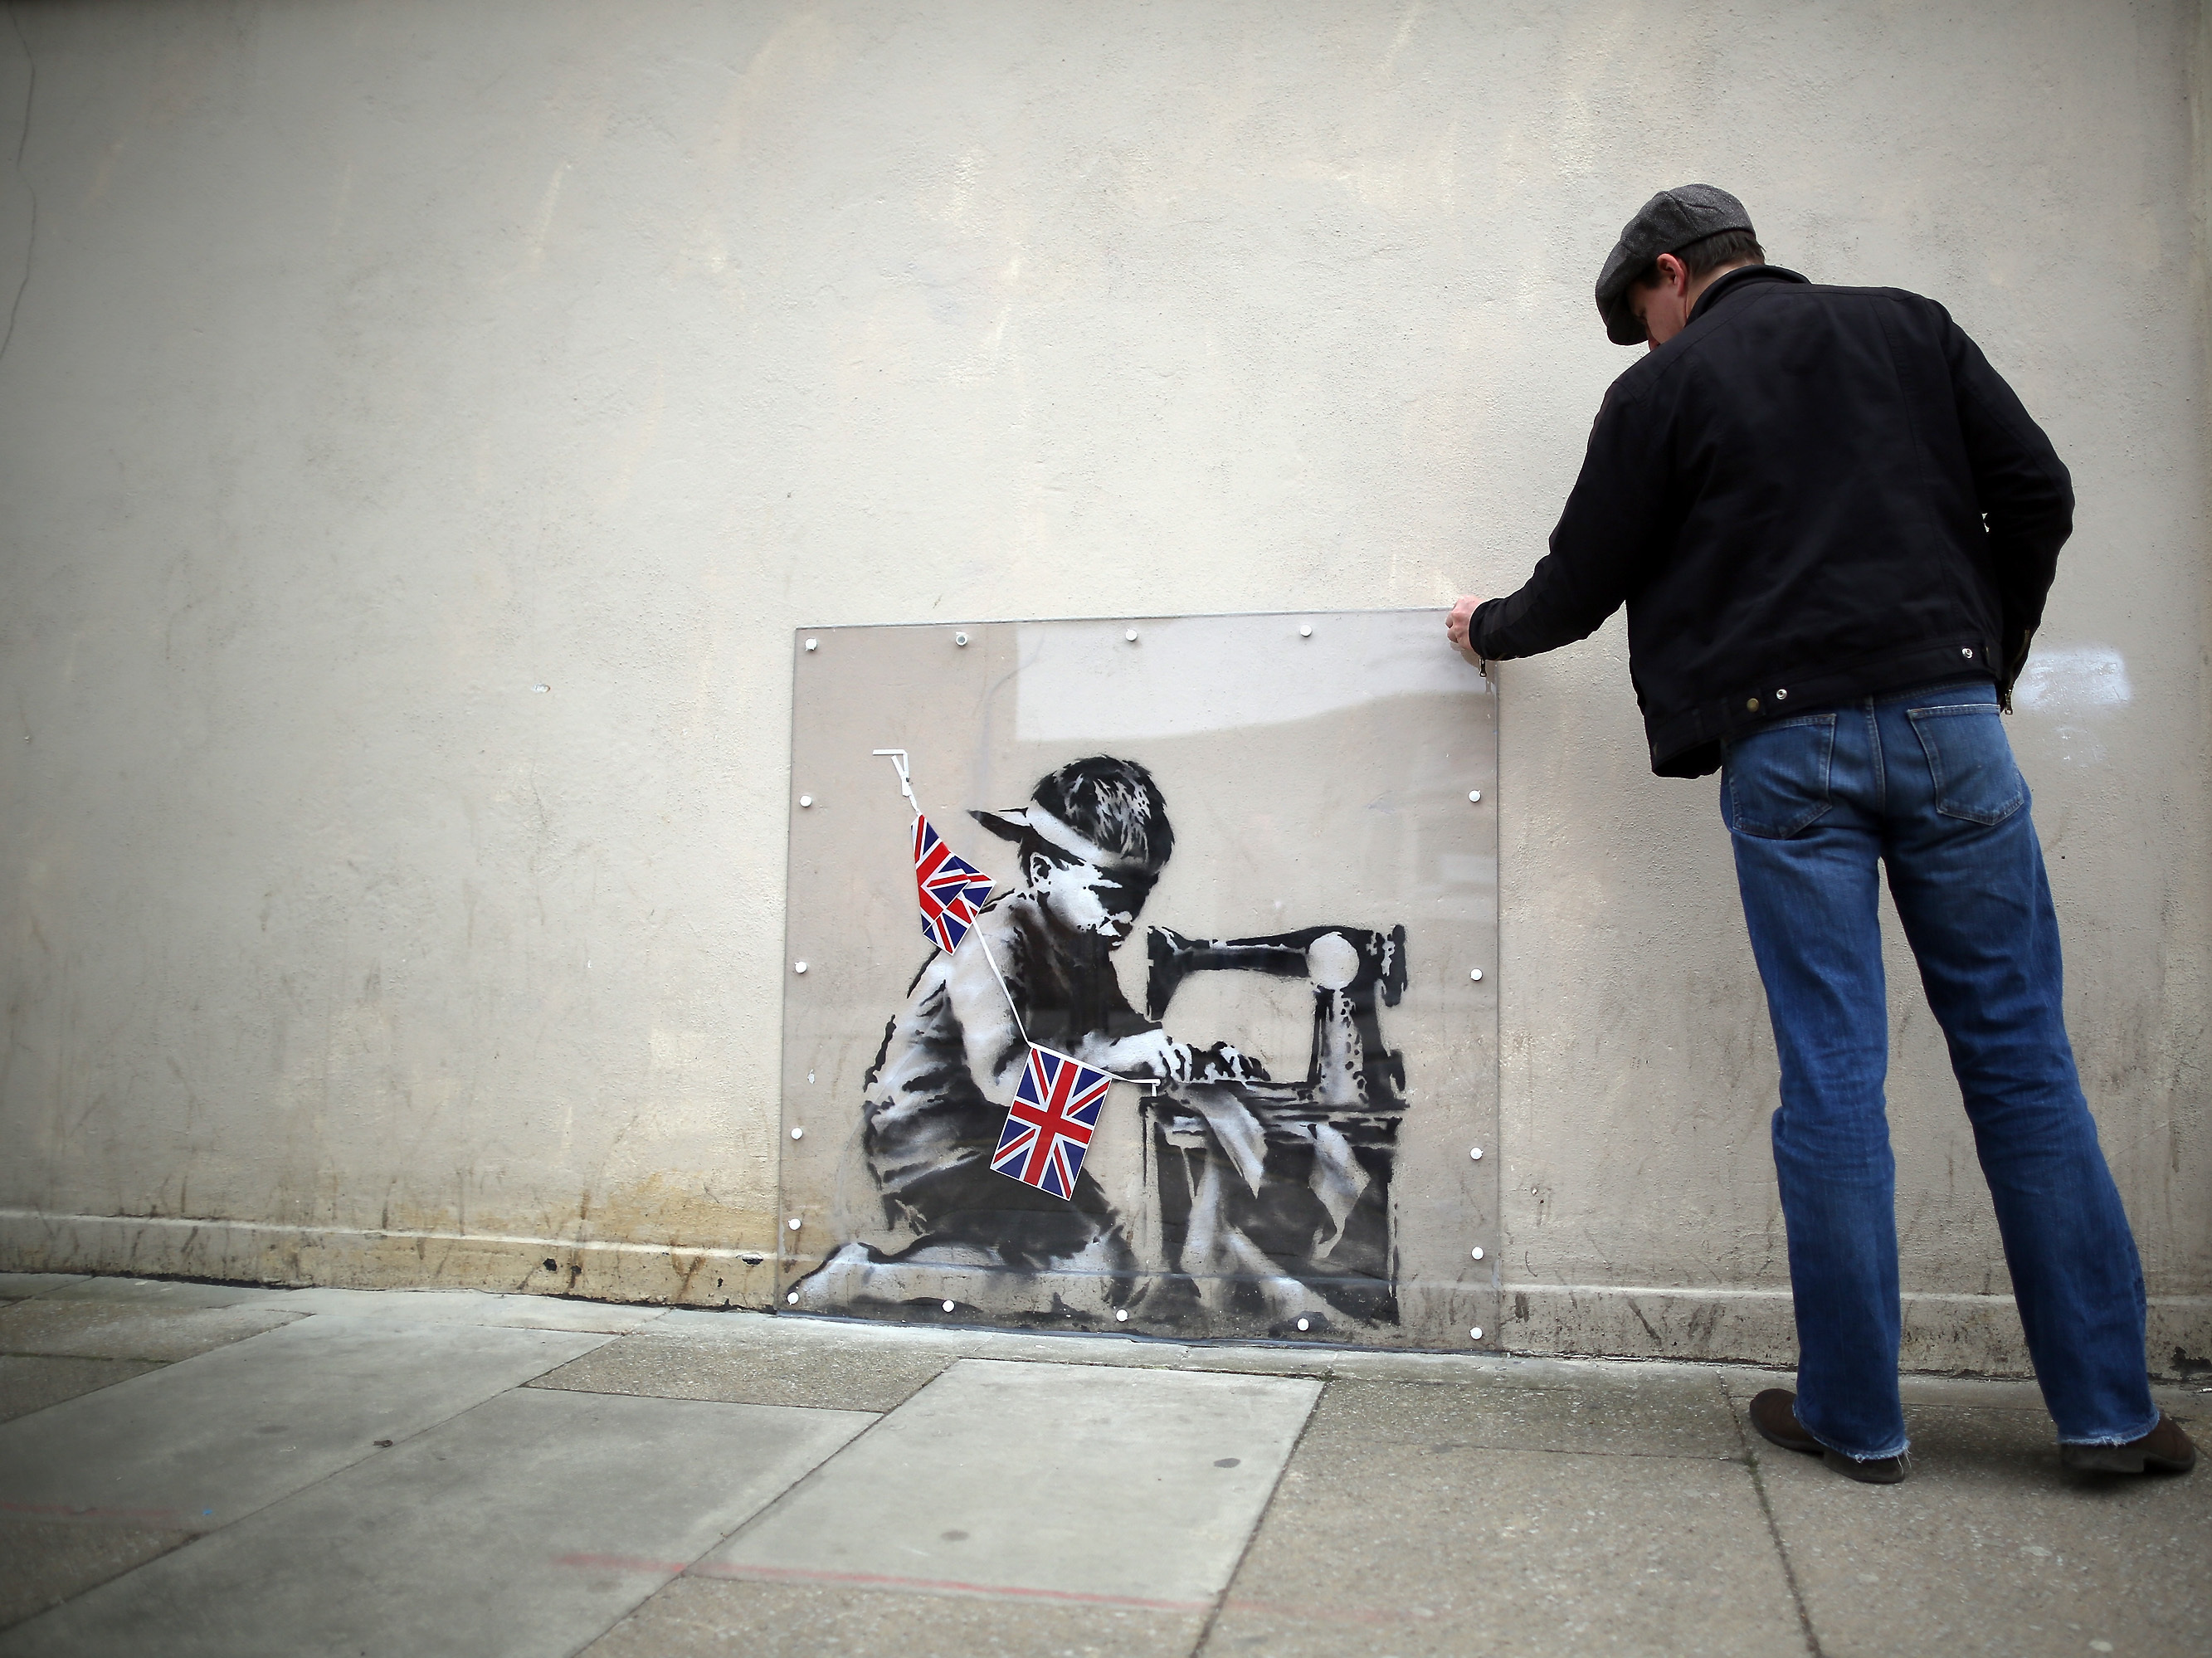 Banksy Mural May Be Coming To U.S. After All